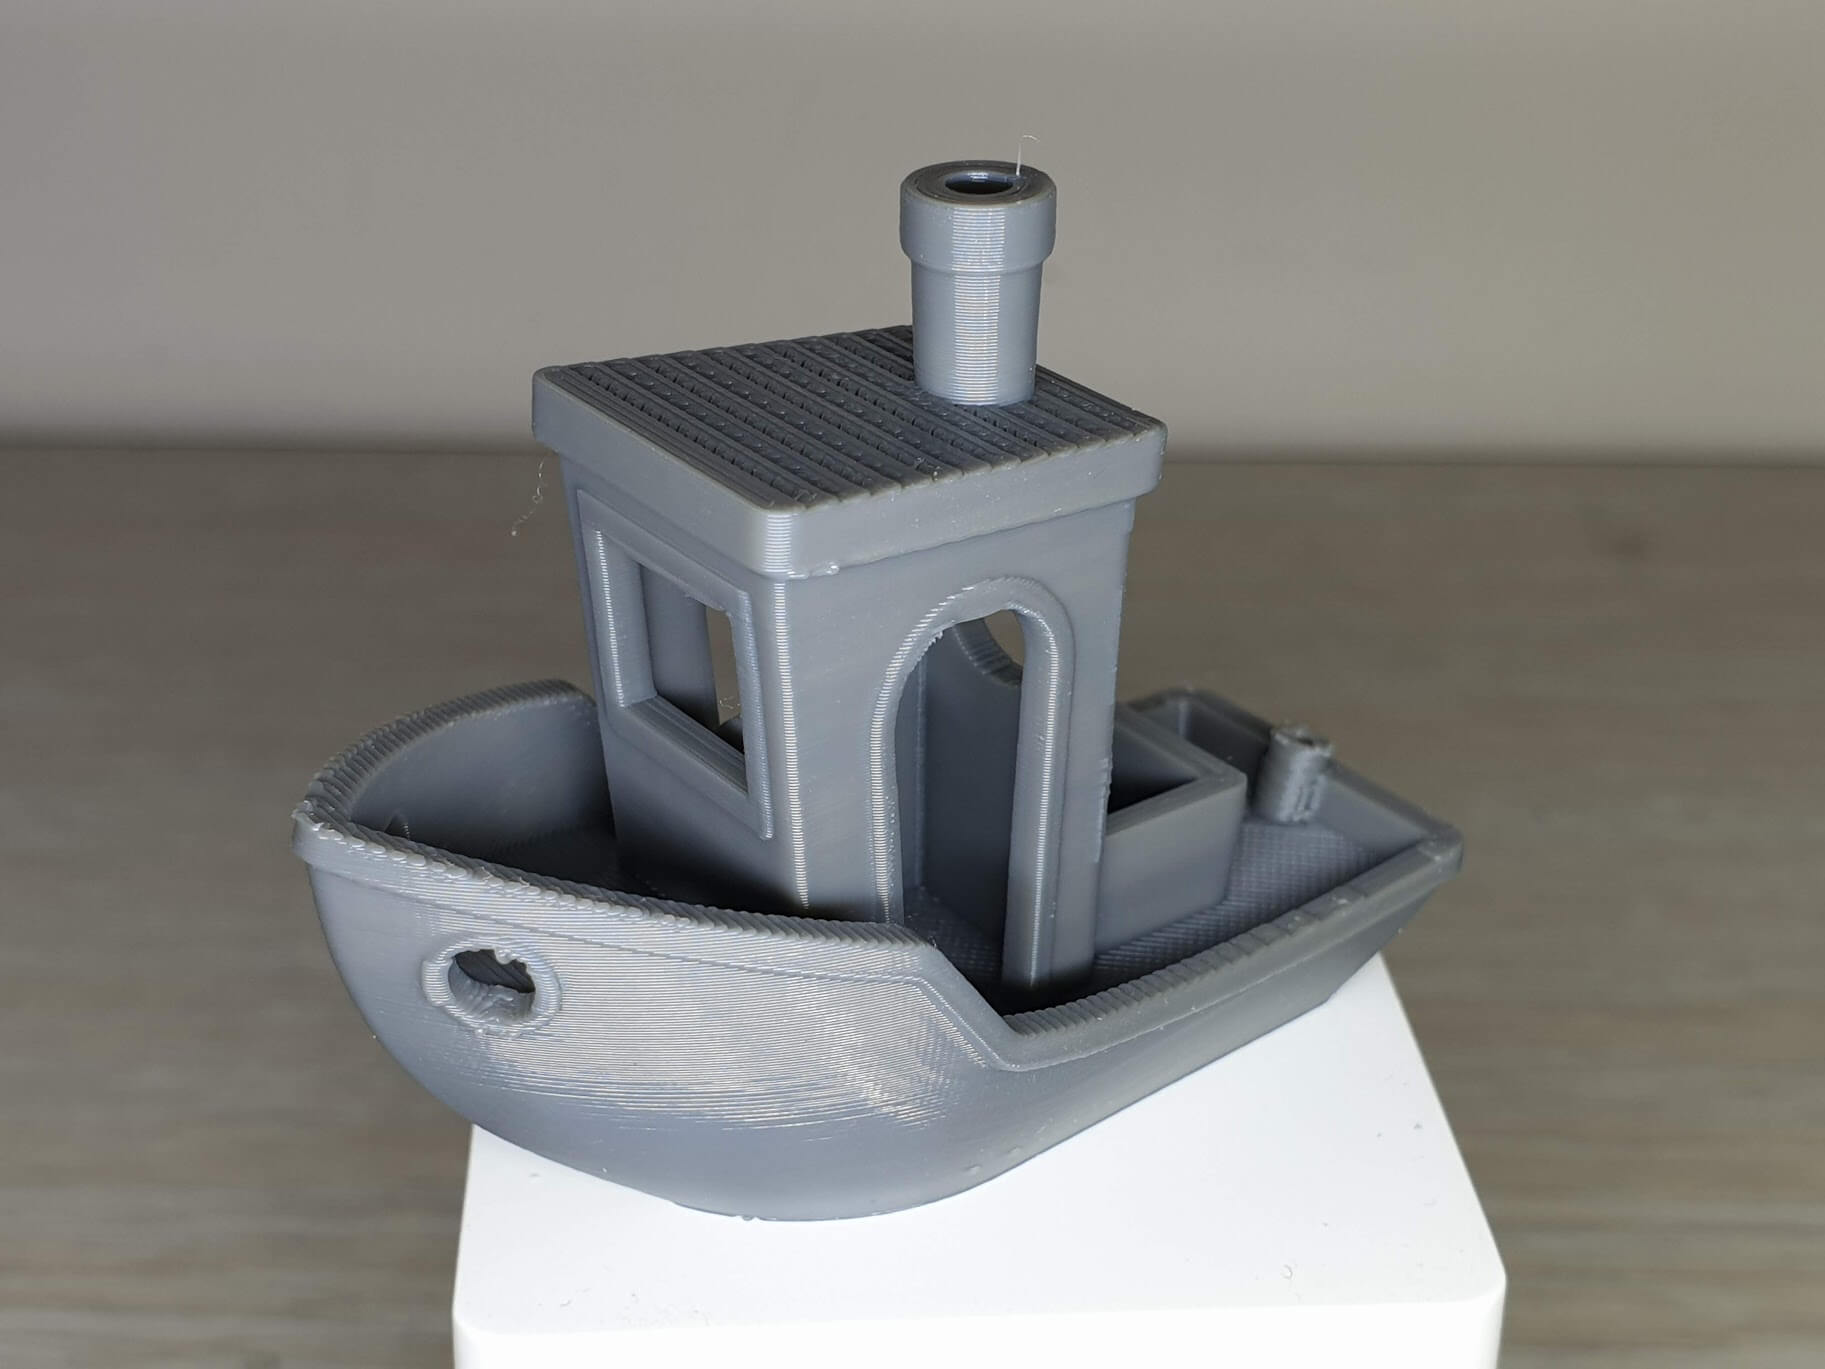 Ideamaker benchy 4 | IdeaMaker Profiles for Sidewinder X1 and Genius